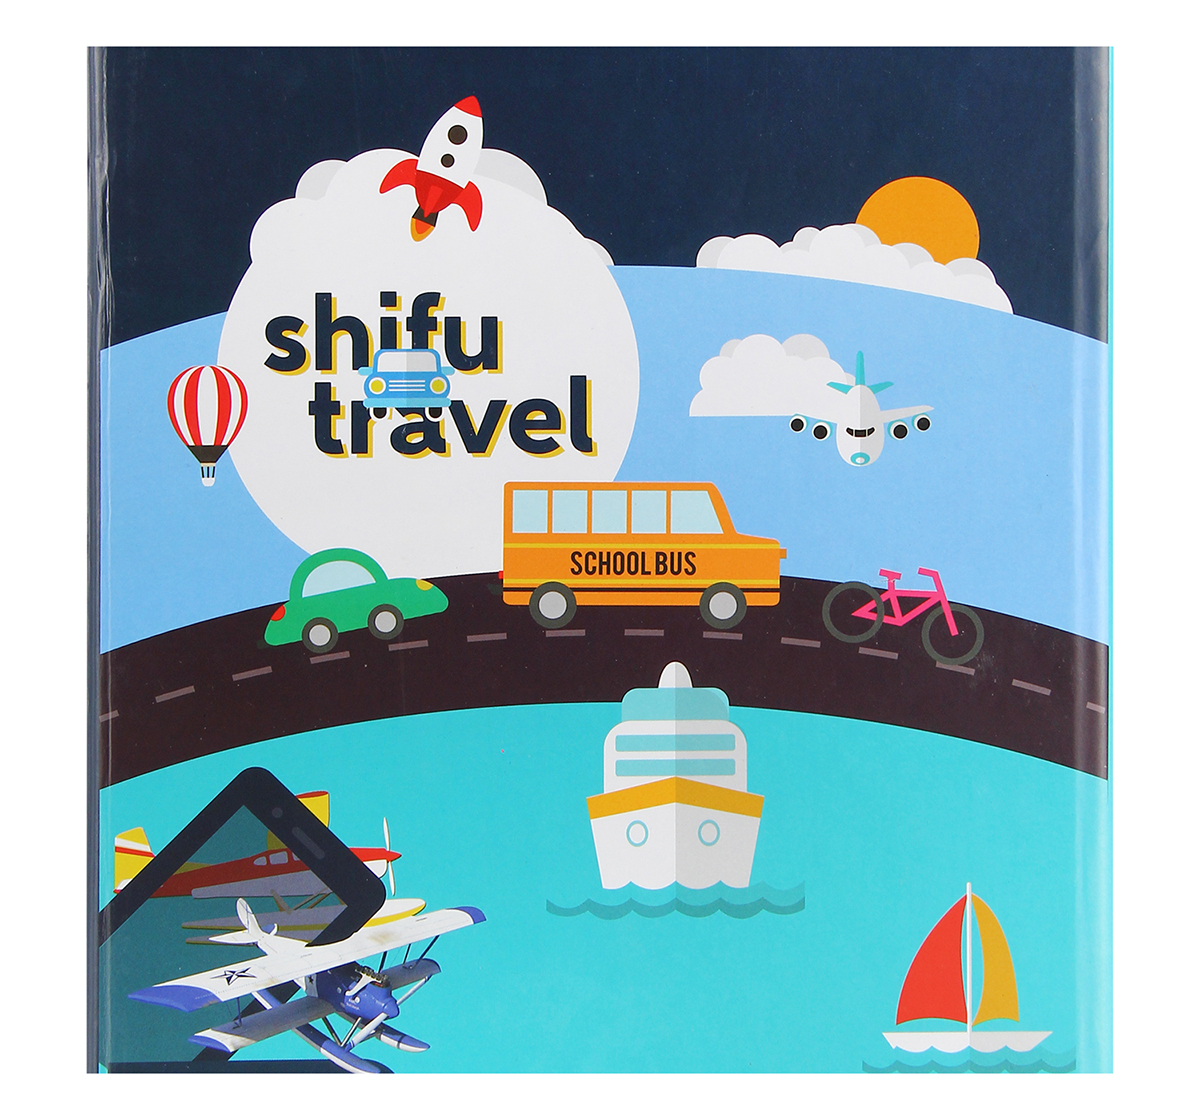 Playshifu | Playshifu Travel Augmented Reality Learning Games - Ios & Android (60 Vehicle Cards) Science Kits for Kids age 24M+